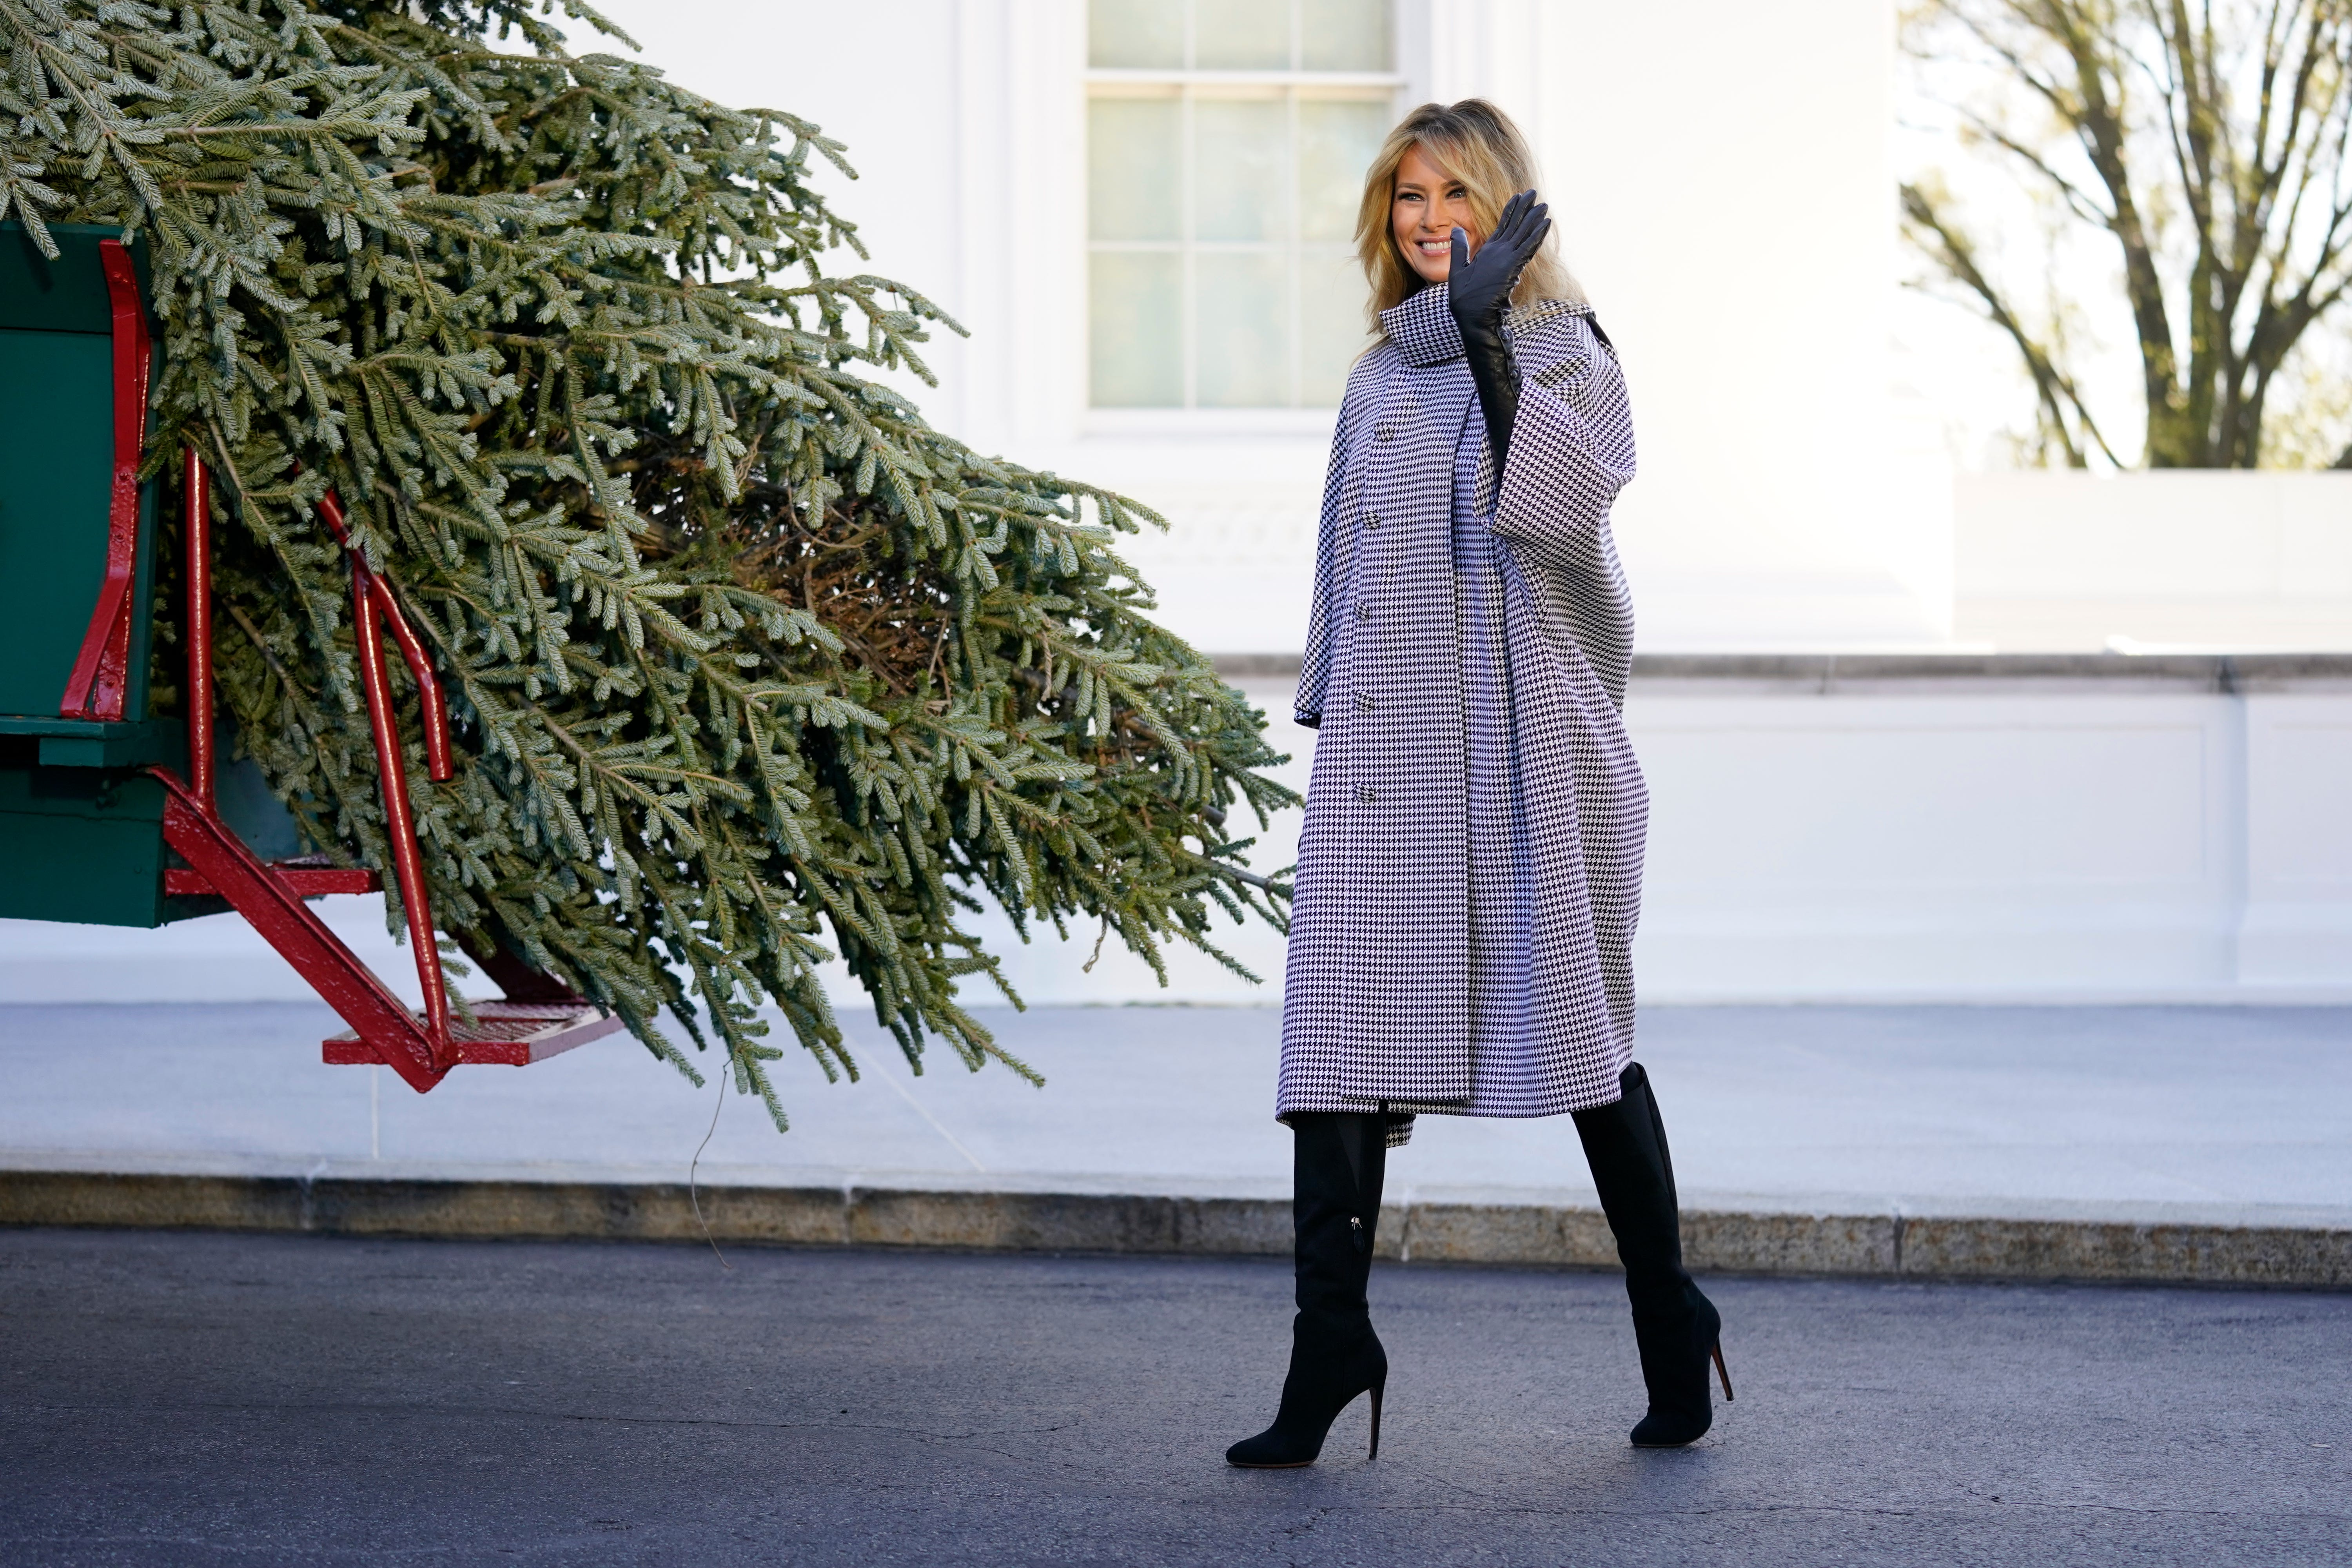 White House to hold indoor holiday parties despite surge in coronavirus cases